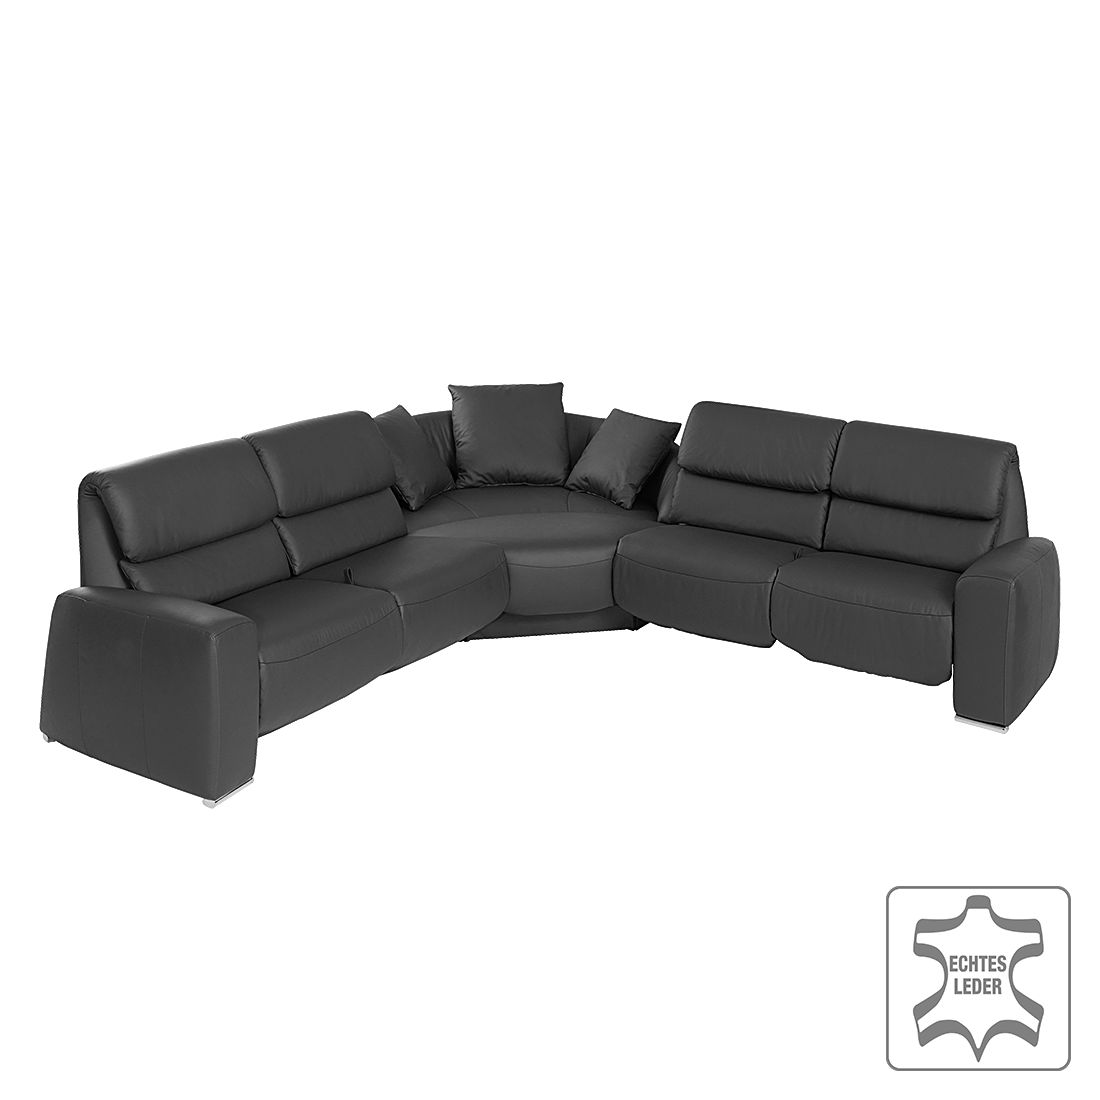 zweisitzer sofa mit relaxfunktion sofa mit relaxfunktion. Black Bedroom Furniture Sets. Home Design Ideas